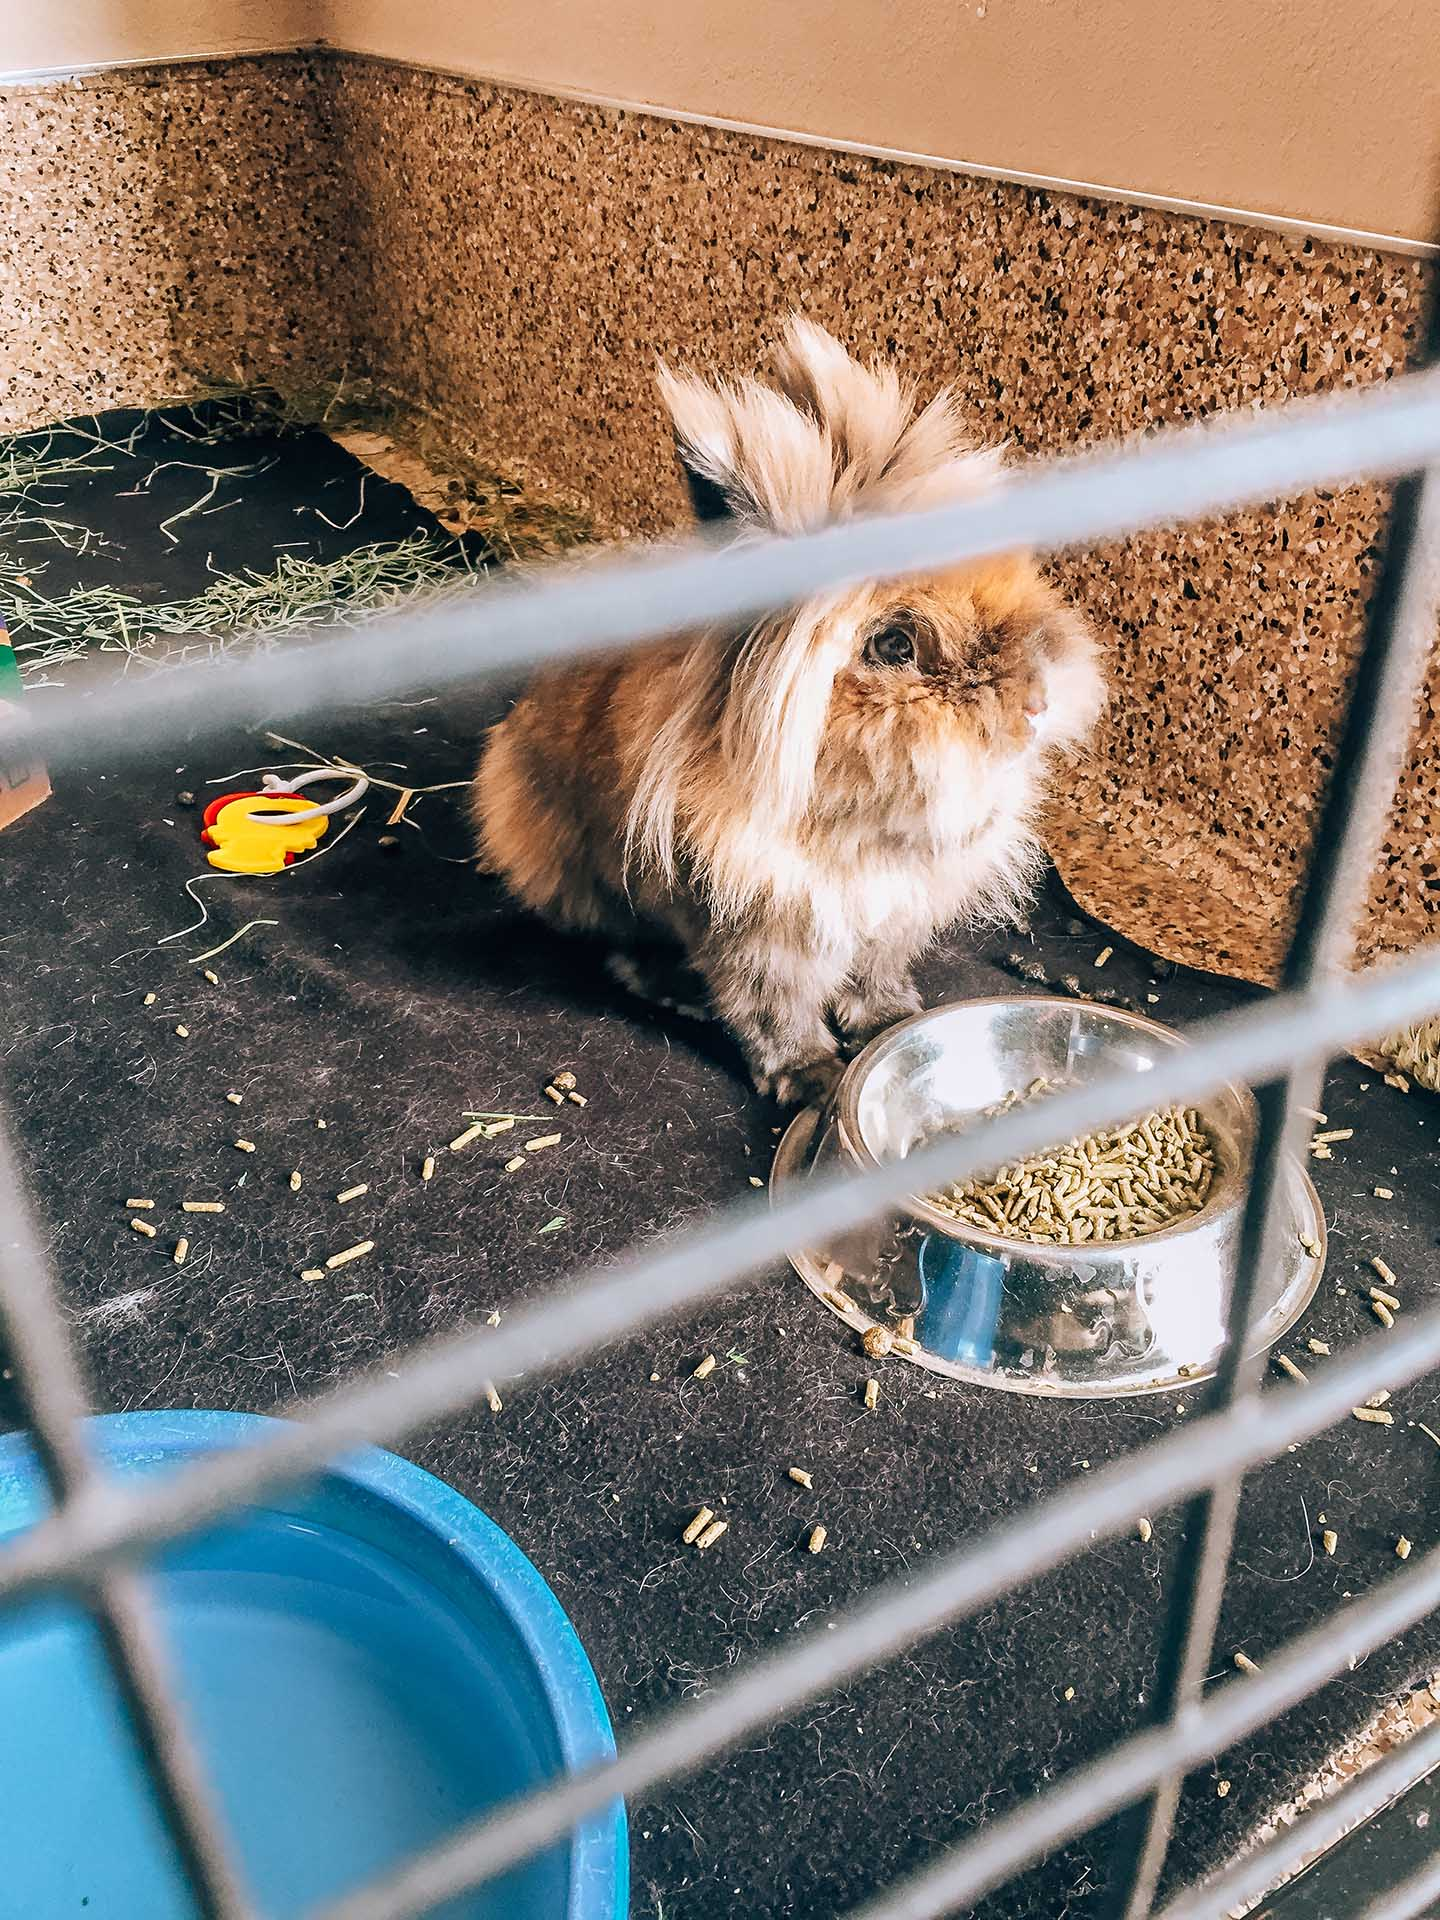 Best Friends Animal Society rescue bunny rabbit in cage